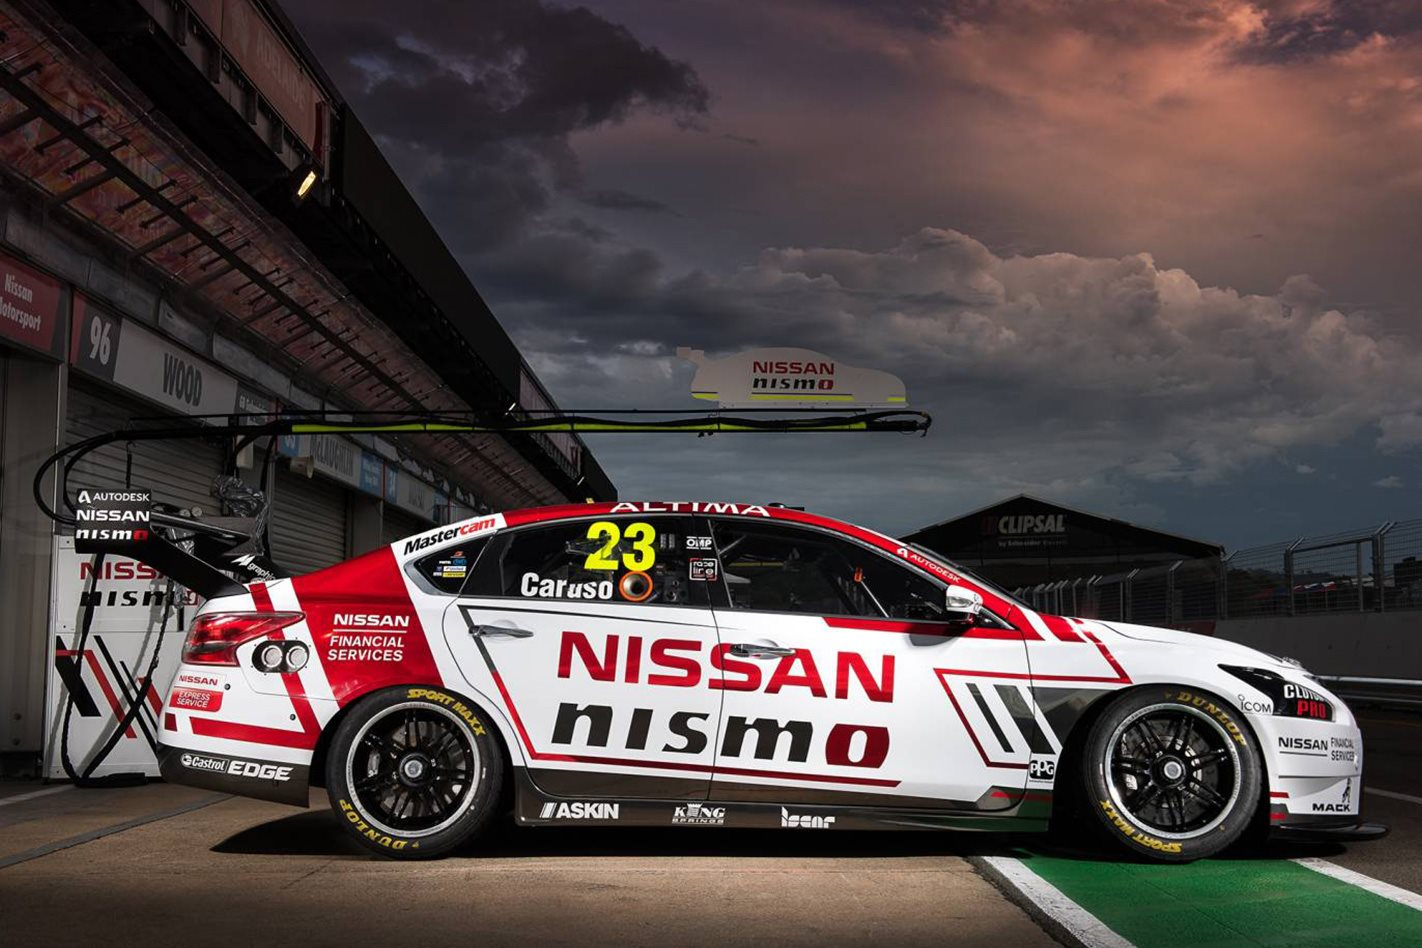 2017 Nissan Nismo V8 Supercar side